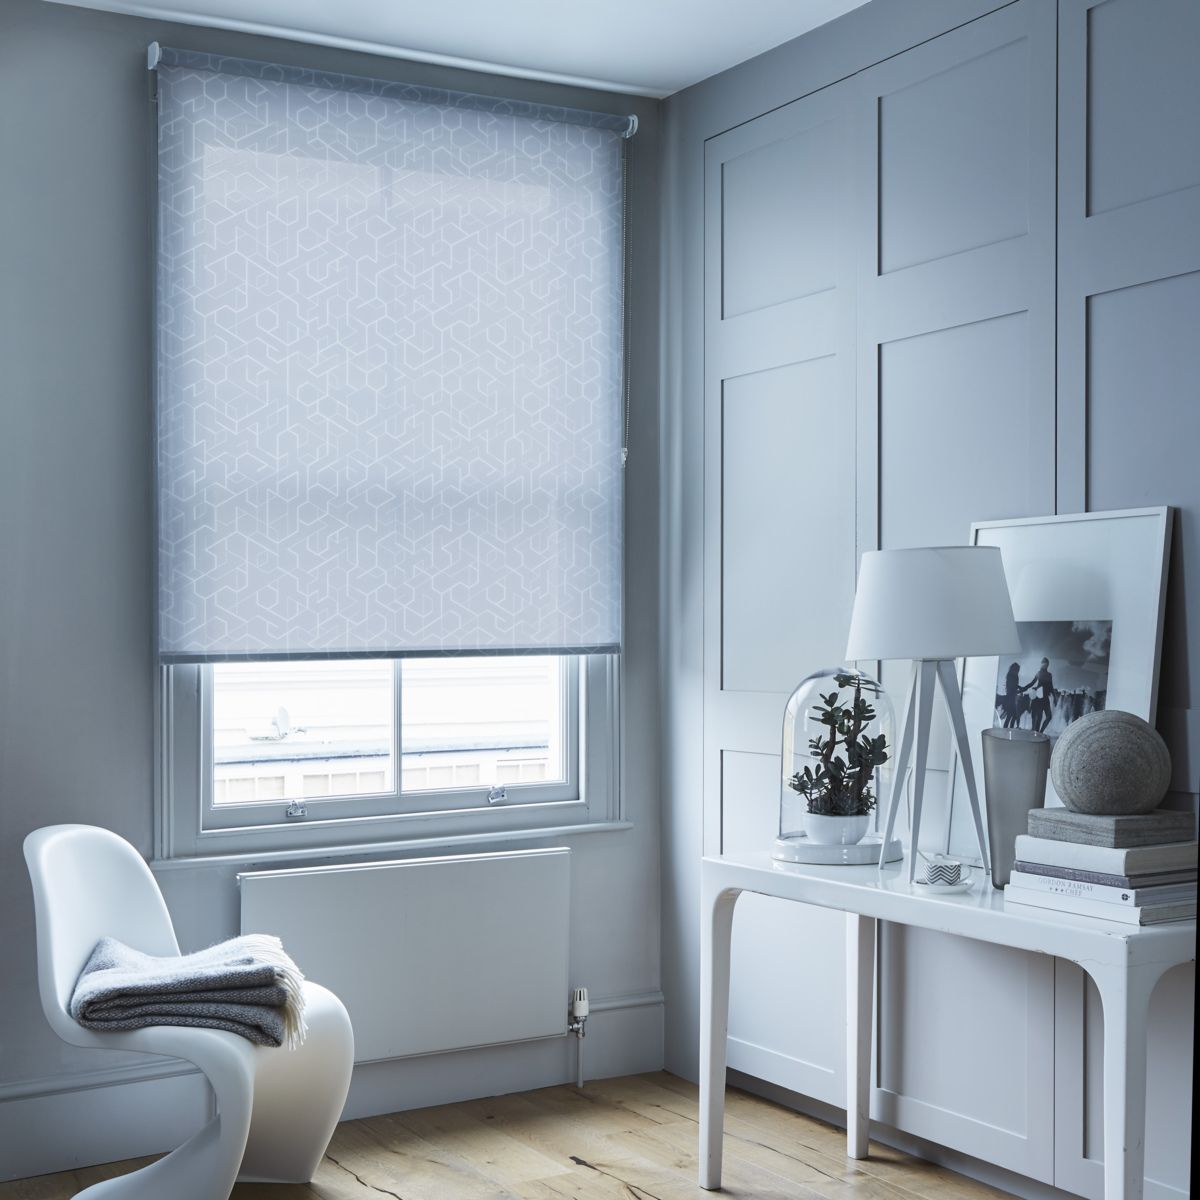 NEW Stylish roller blinds from the House Beautiful collection at